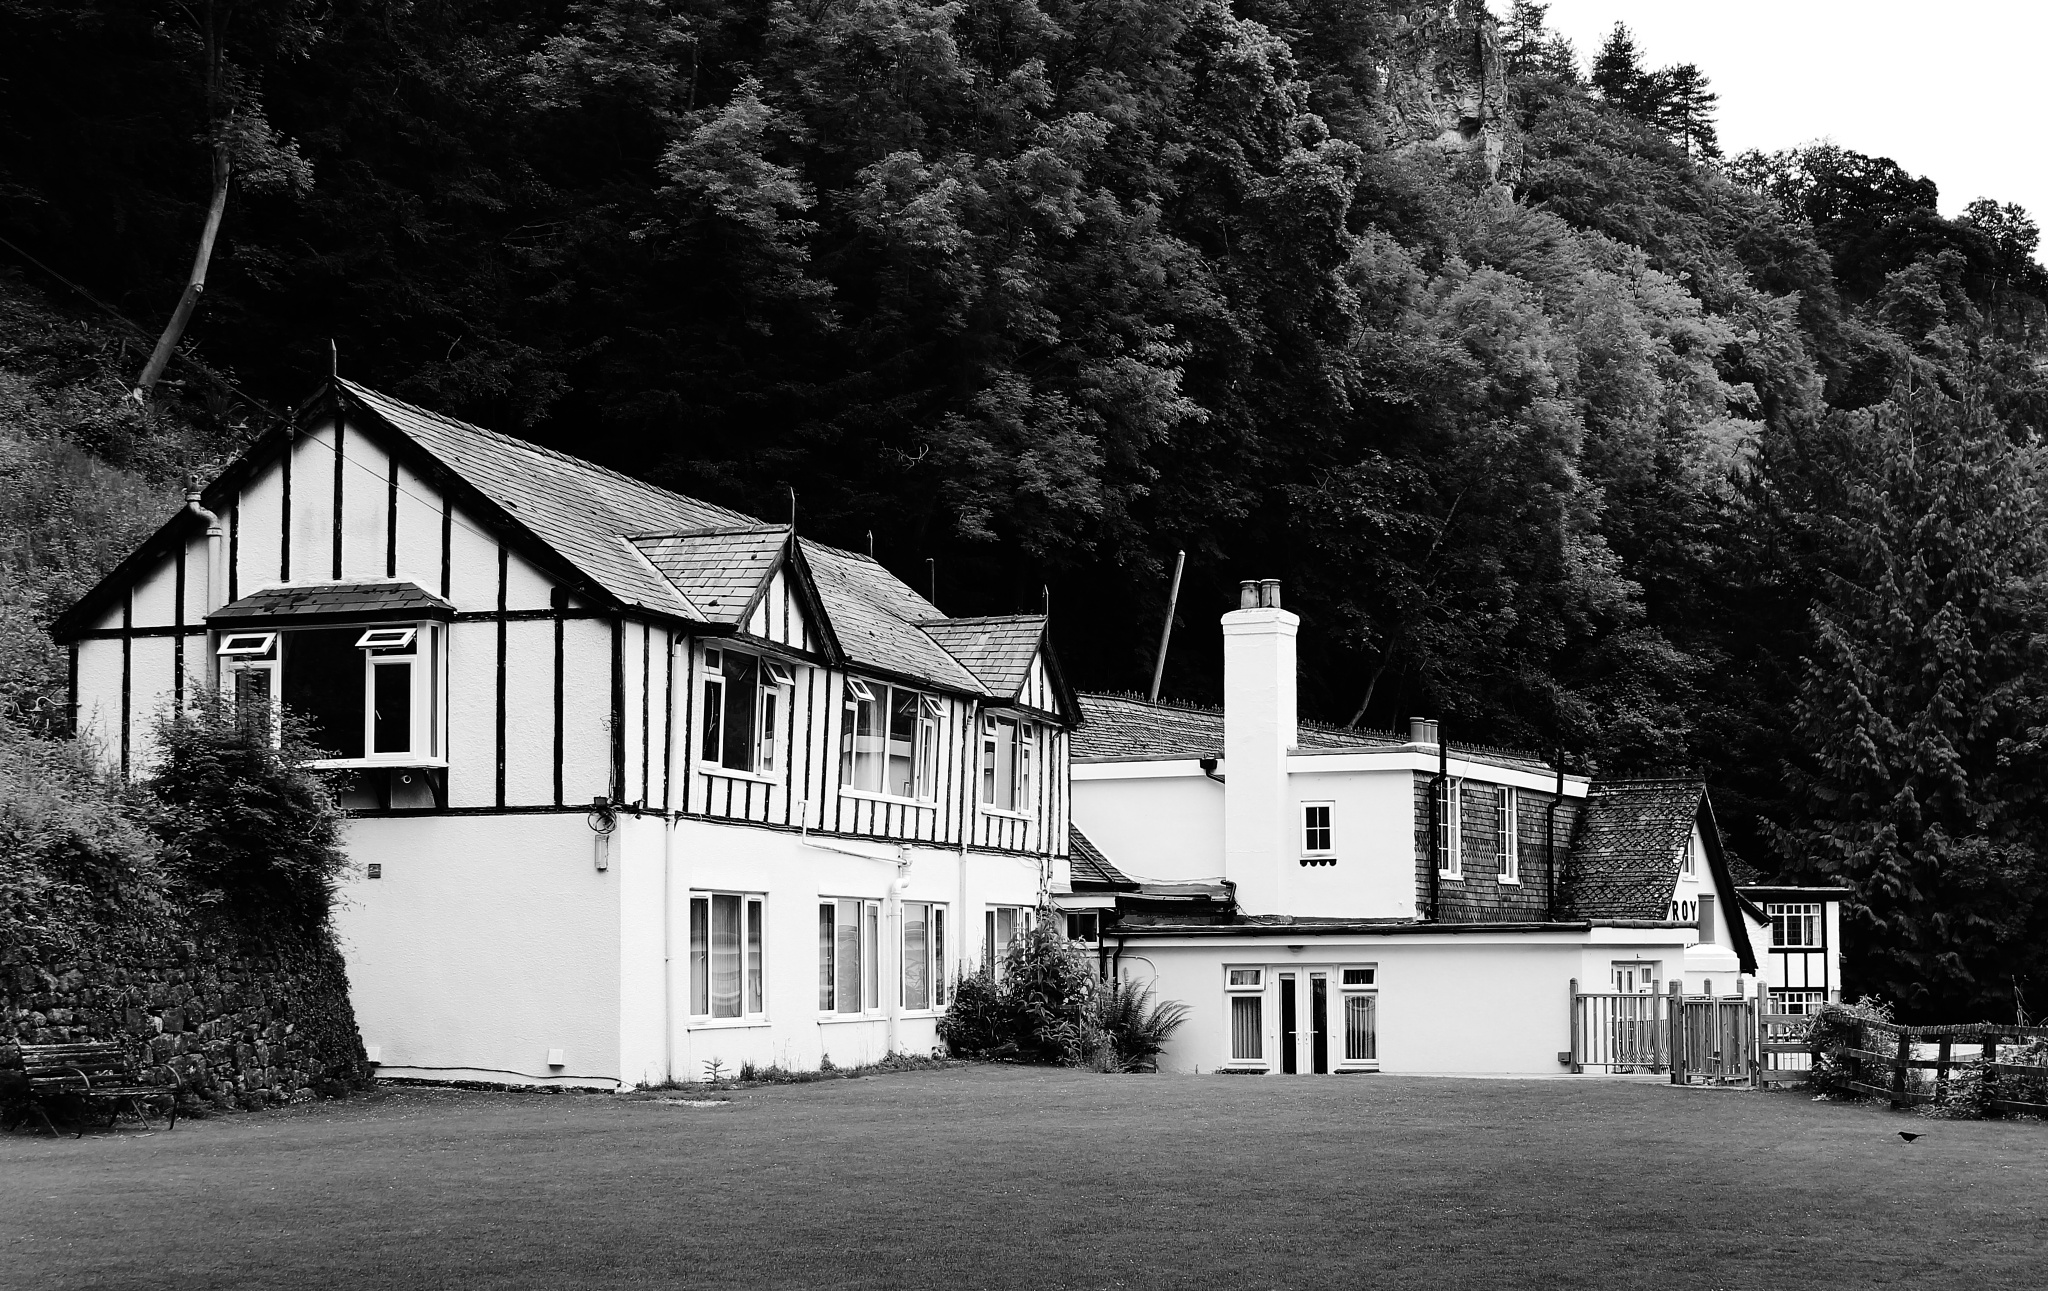 White House in the Forest of Dean... by Corban Wishart